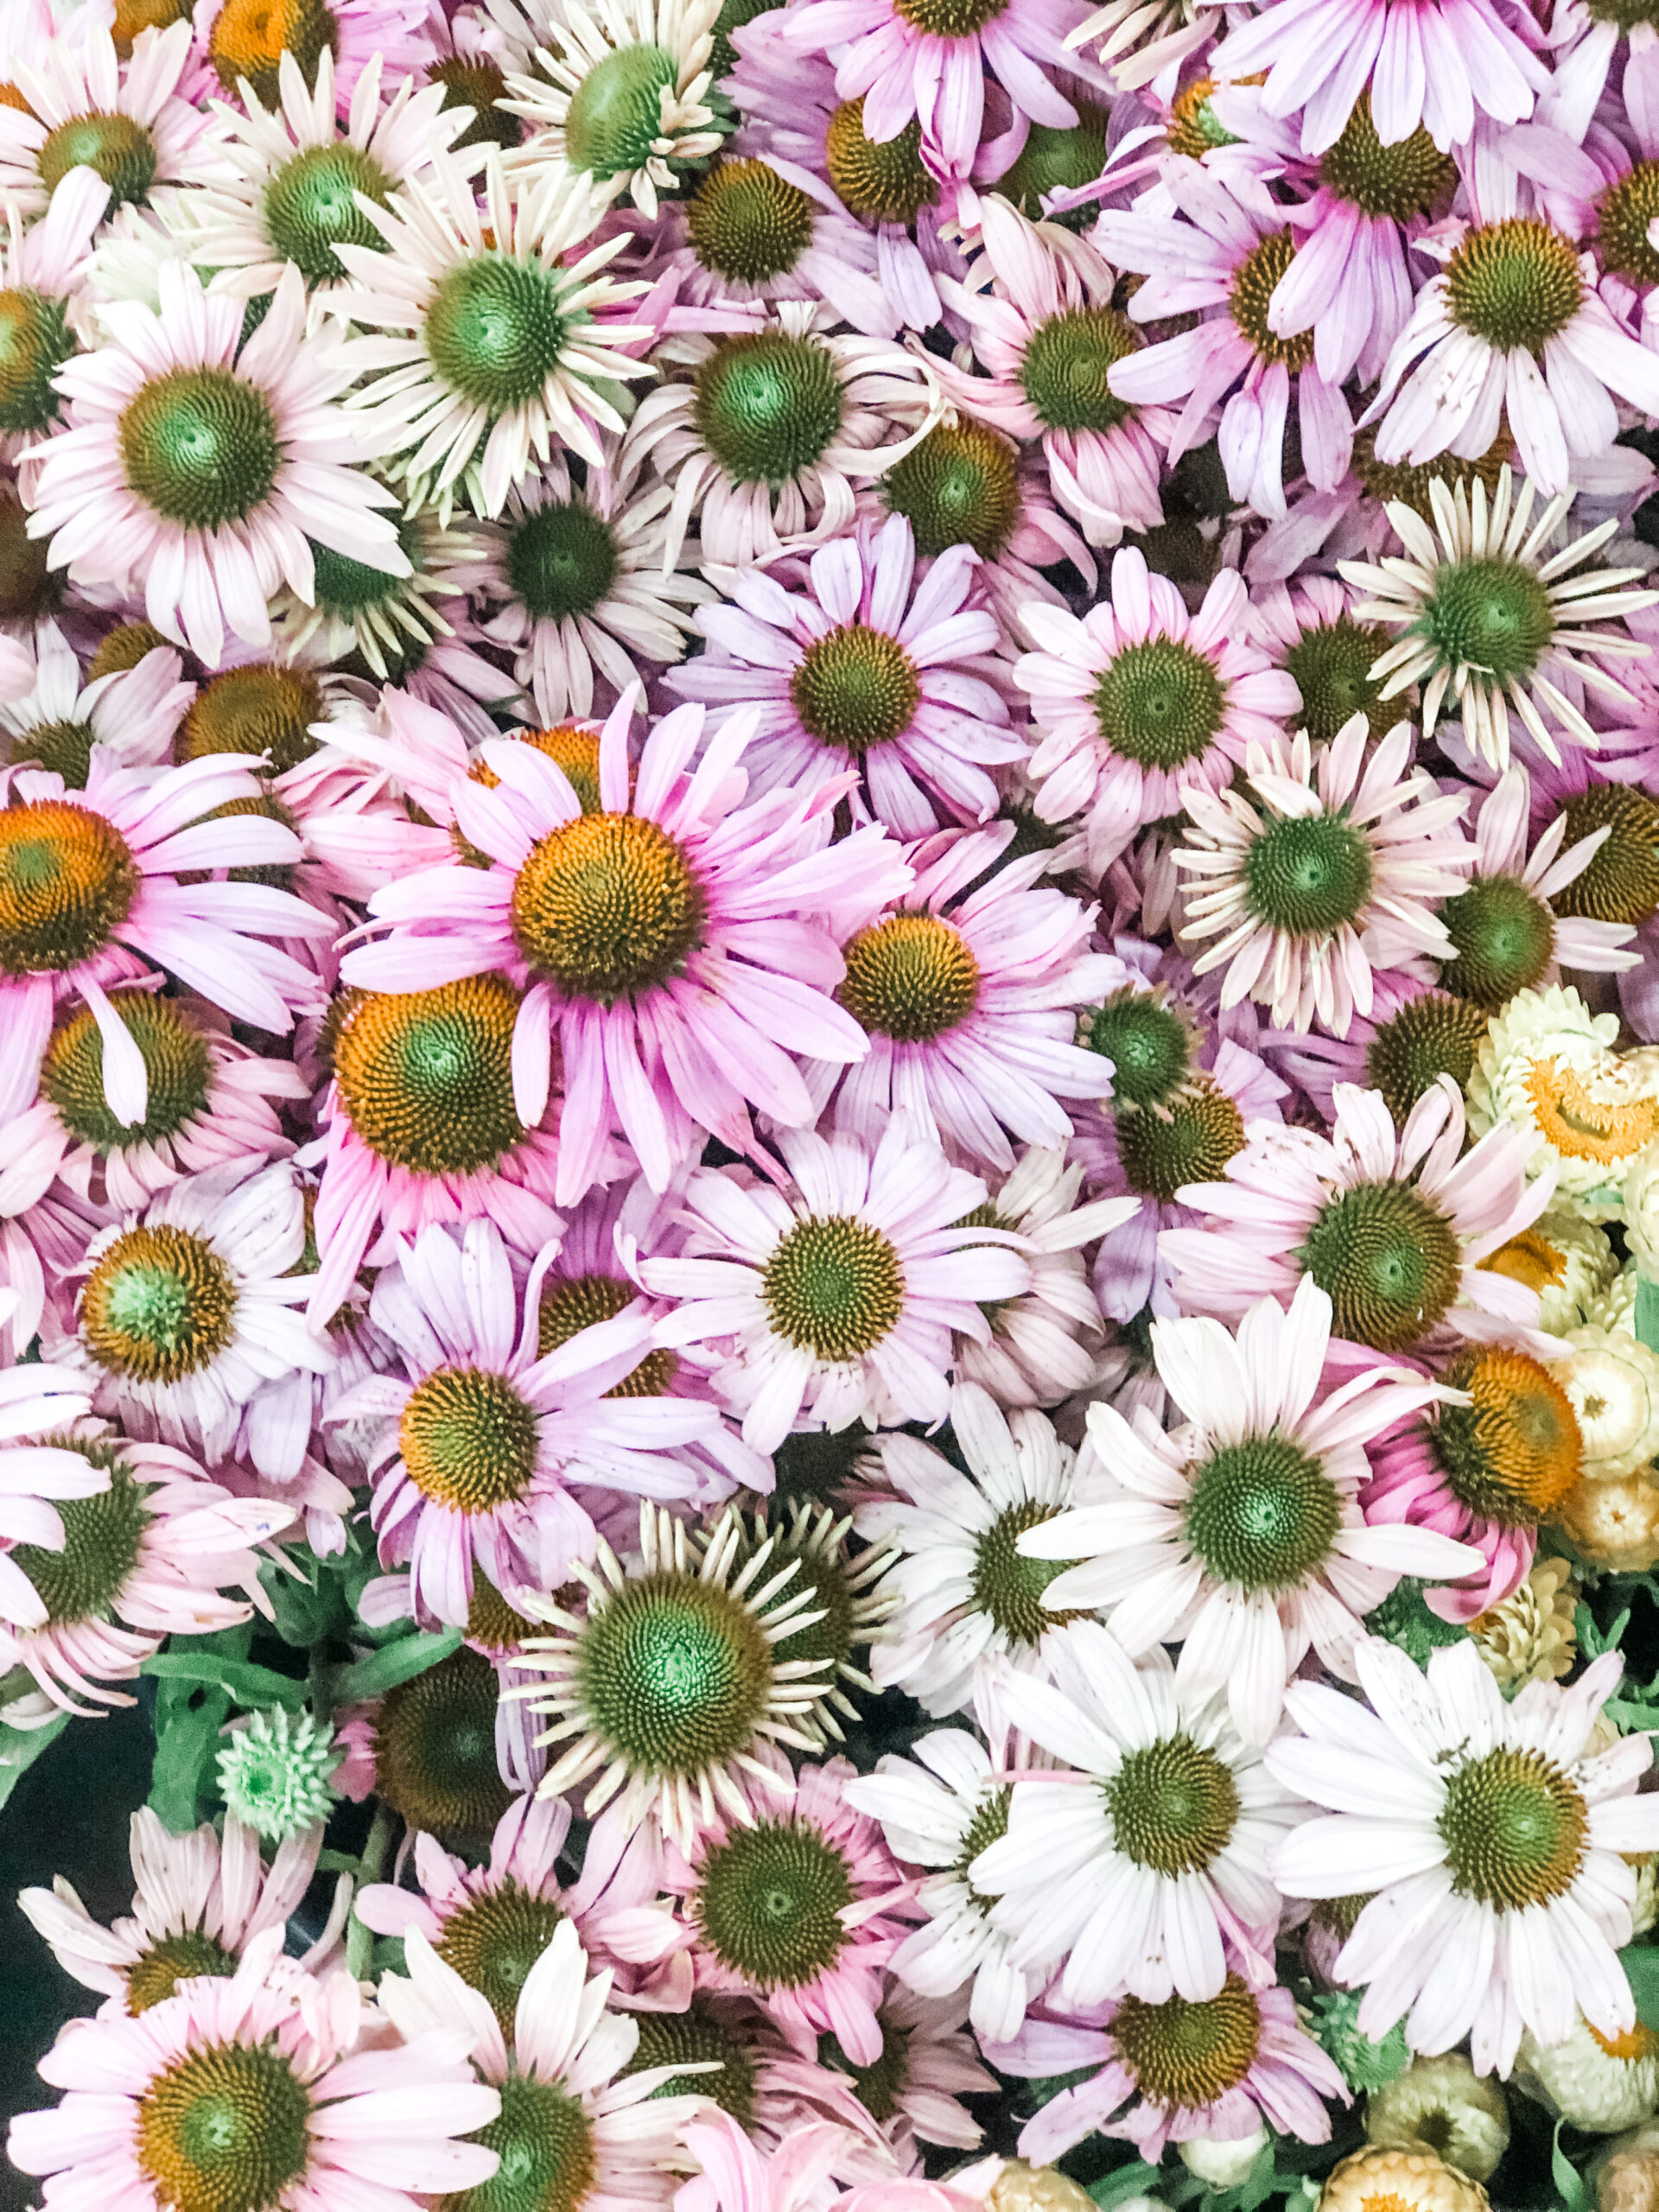 Pink Echinacea blooms snapped at The LA Flower Market by Tabitha Abercrombie of Winston & Main